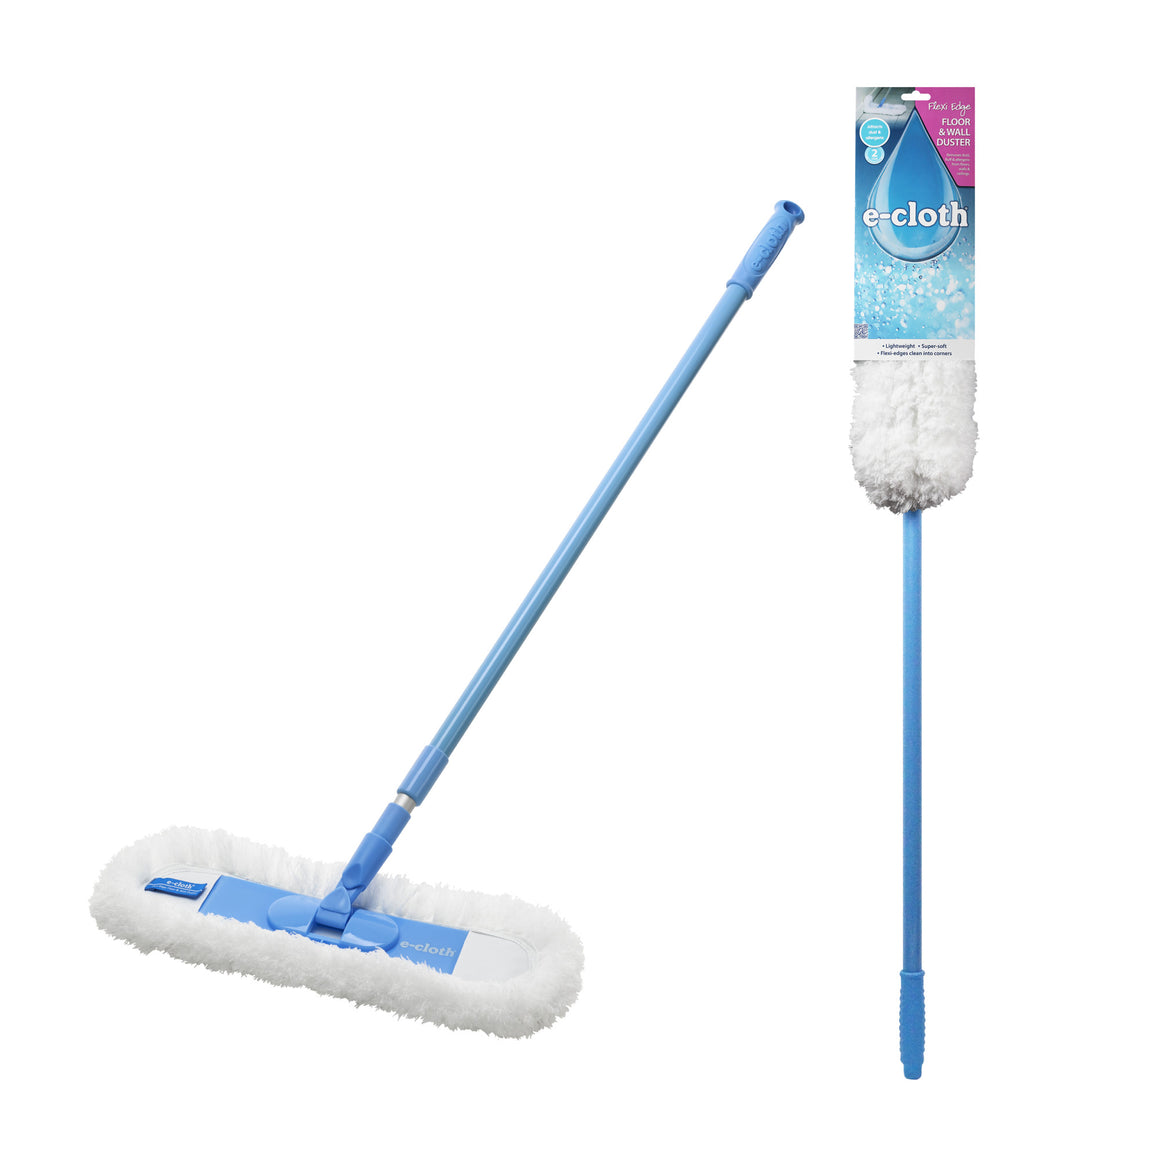 Flexi Edge Floor & Wall Duster